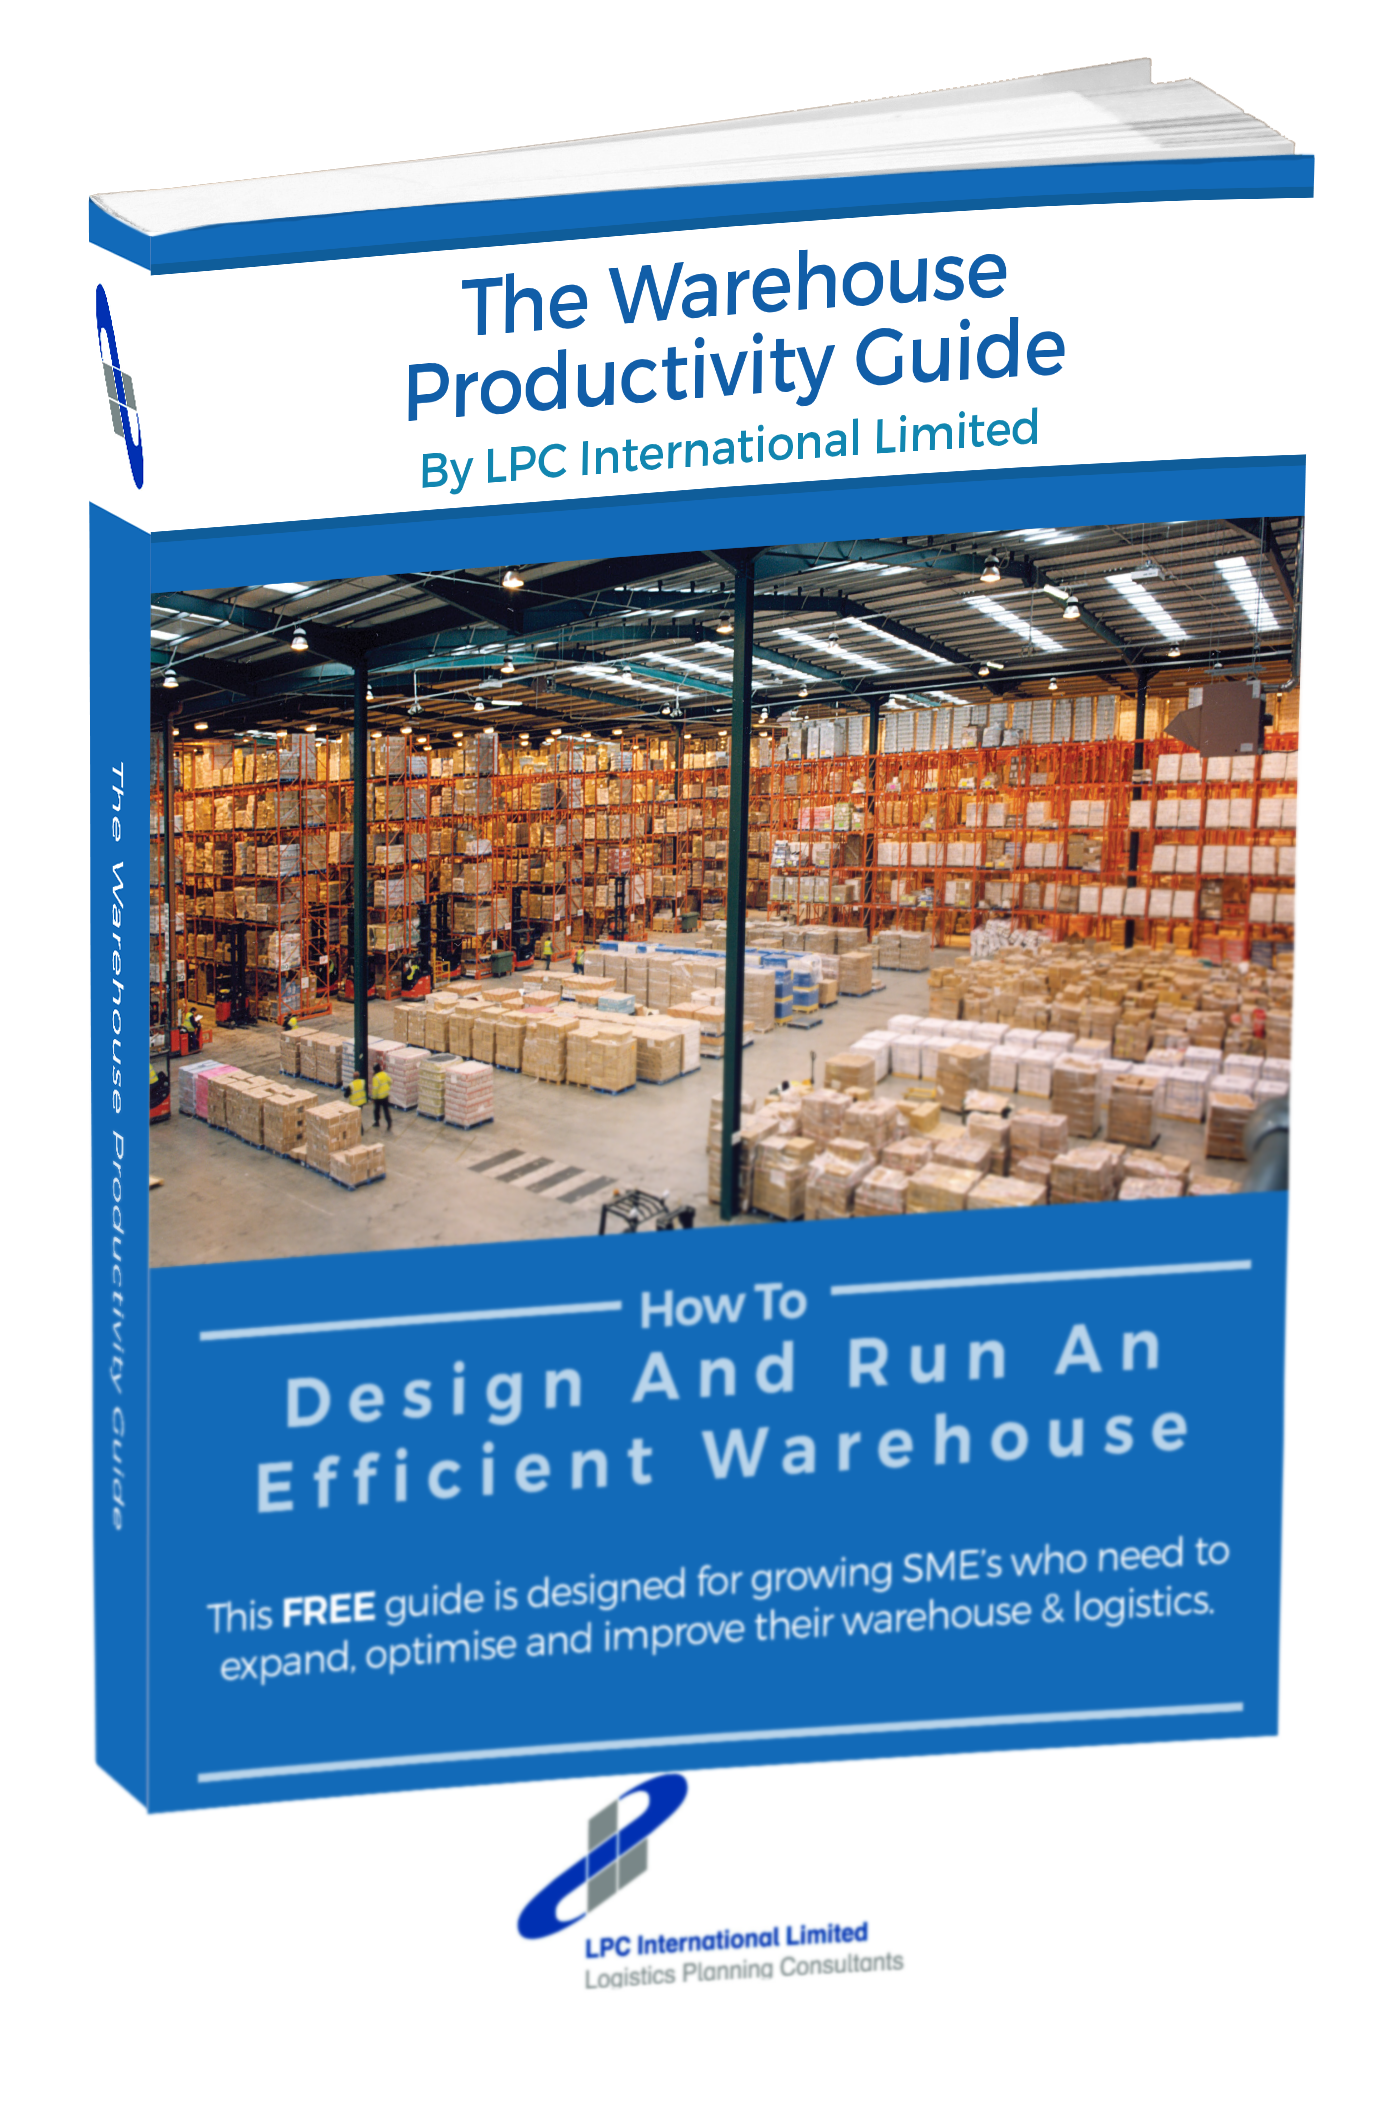 Ebook_Cover_LPC_warehouse_productivity_guide.png